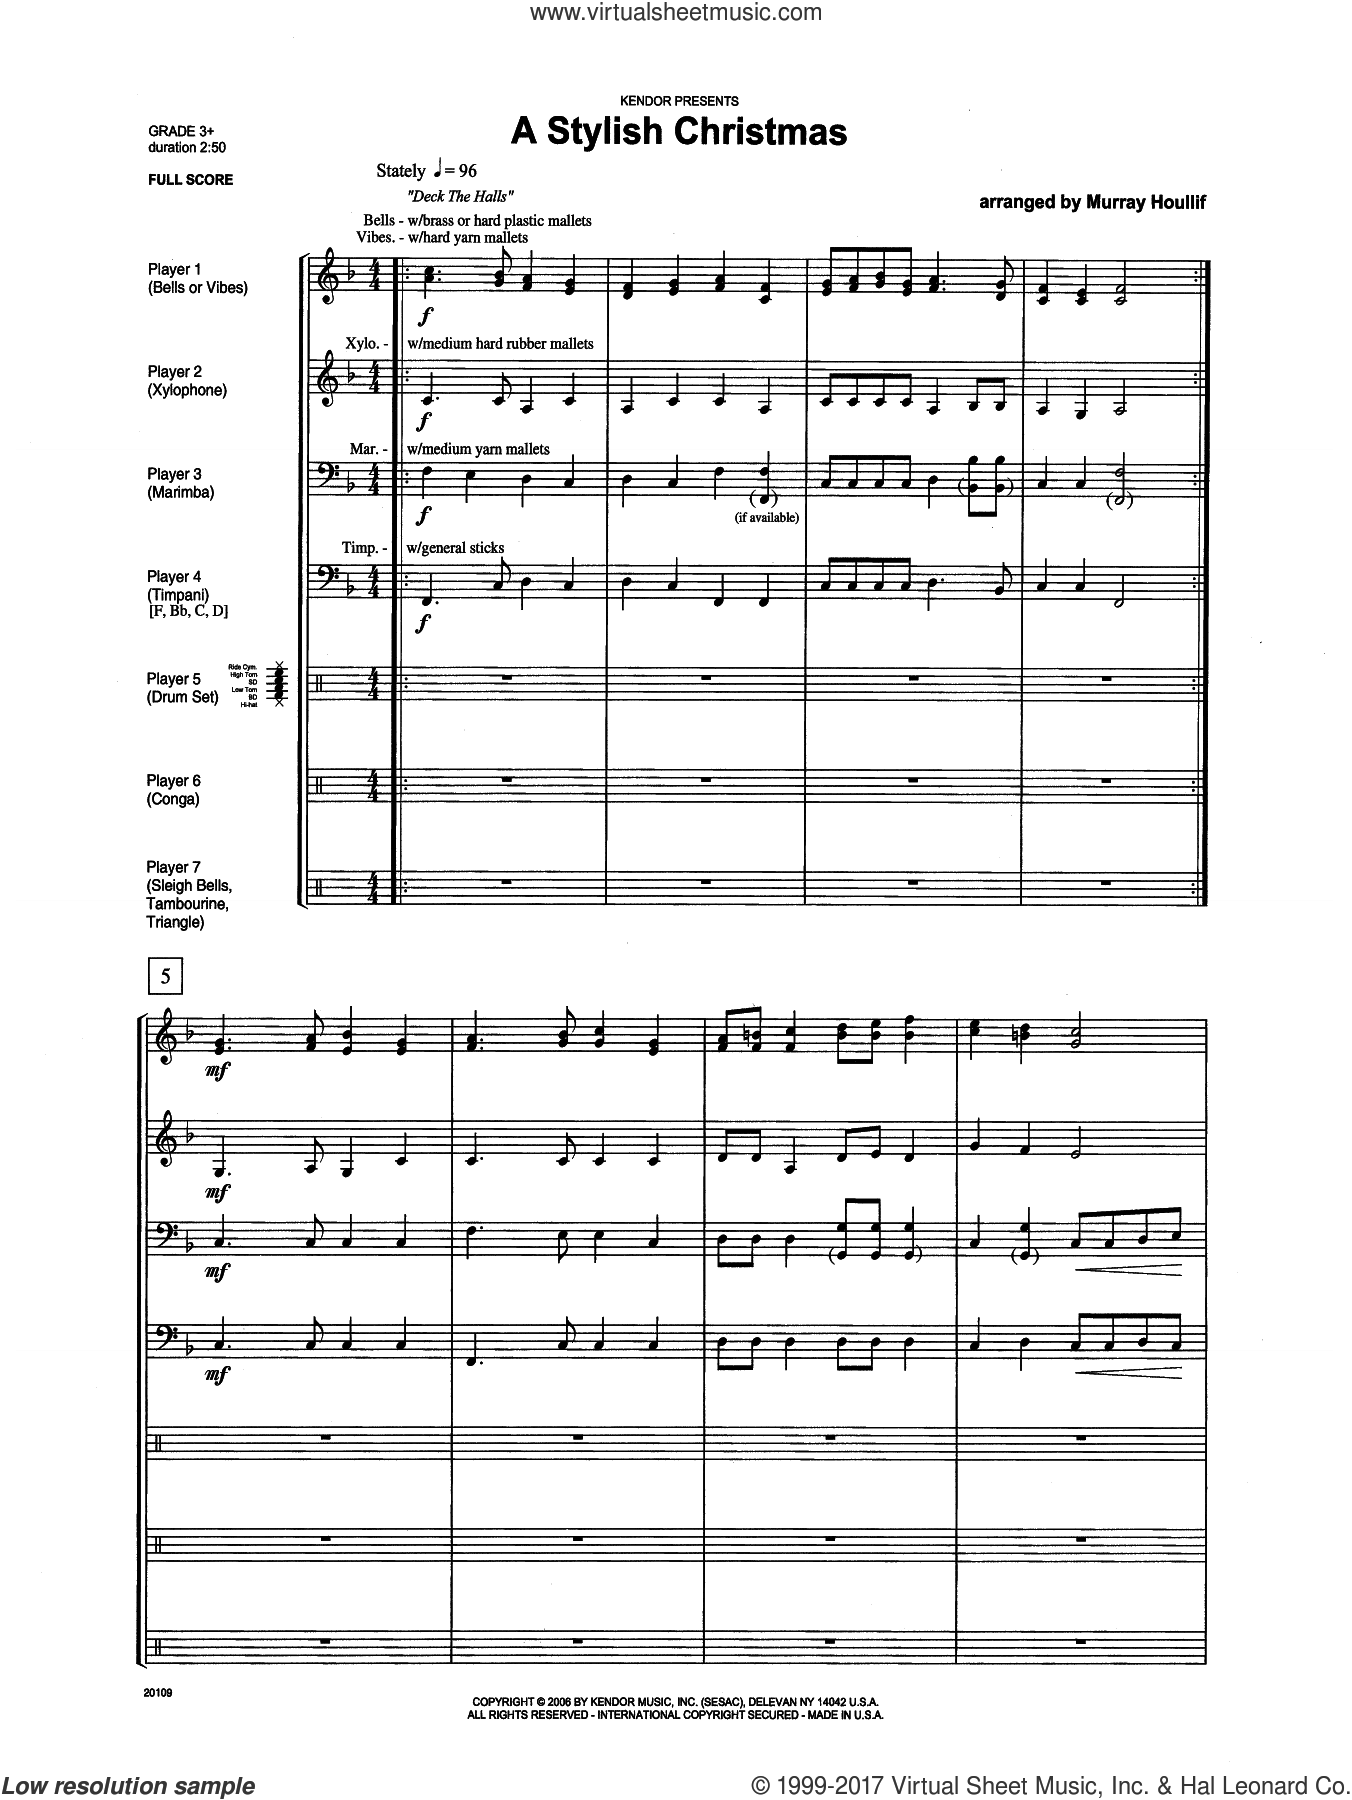 A Stylish Christmas (COMPLETE) sheet music for percussions by Houllif, intermediate skill level